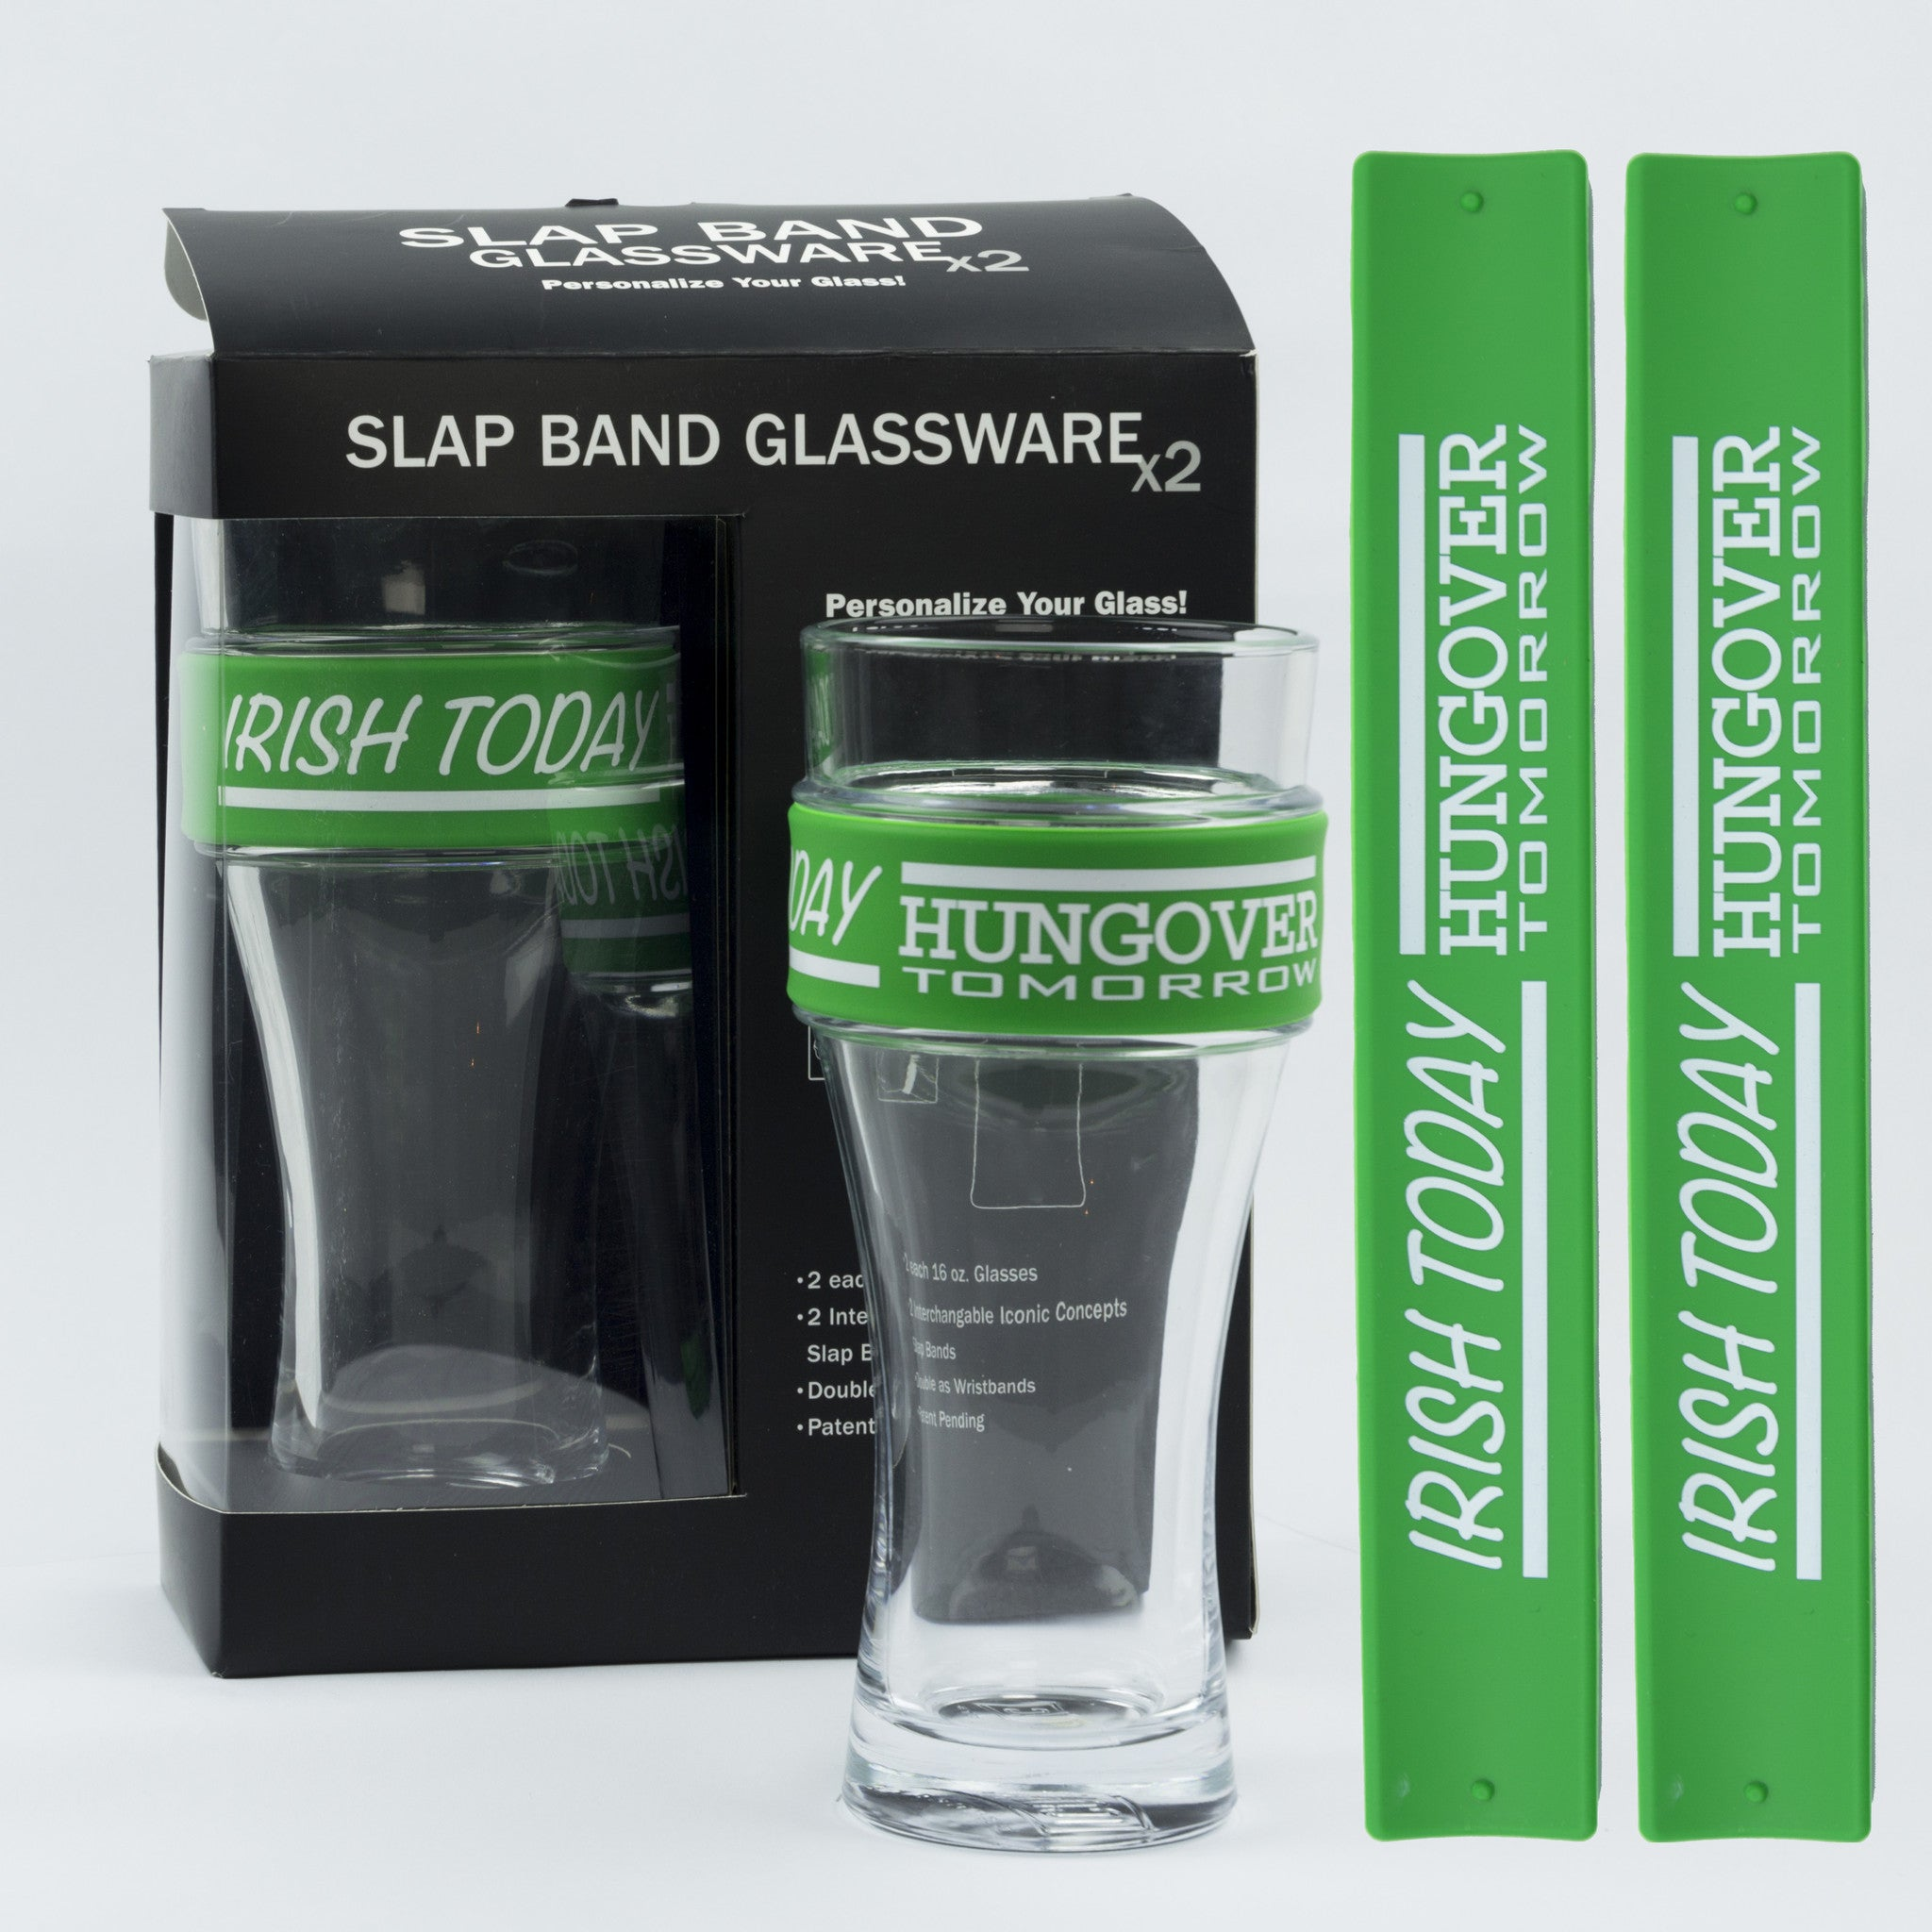 St Patricks Day Slap Band Glassware - Irish Today Hungover Tomorrow